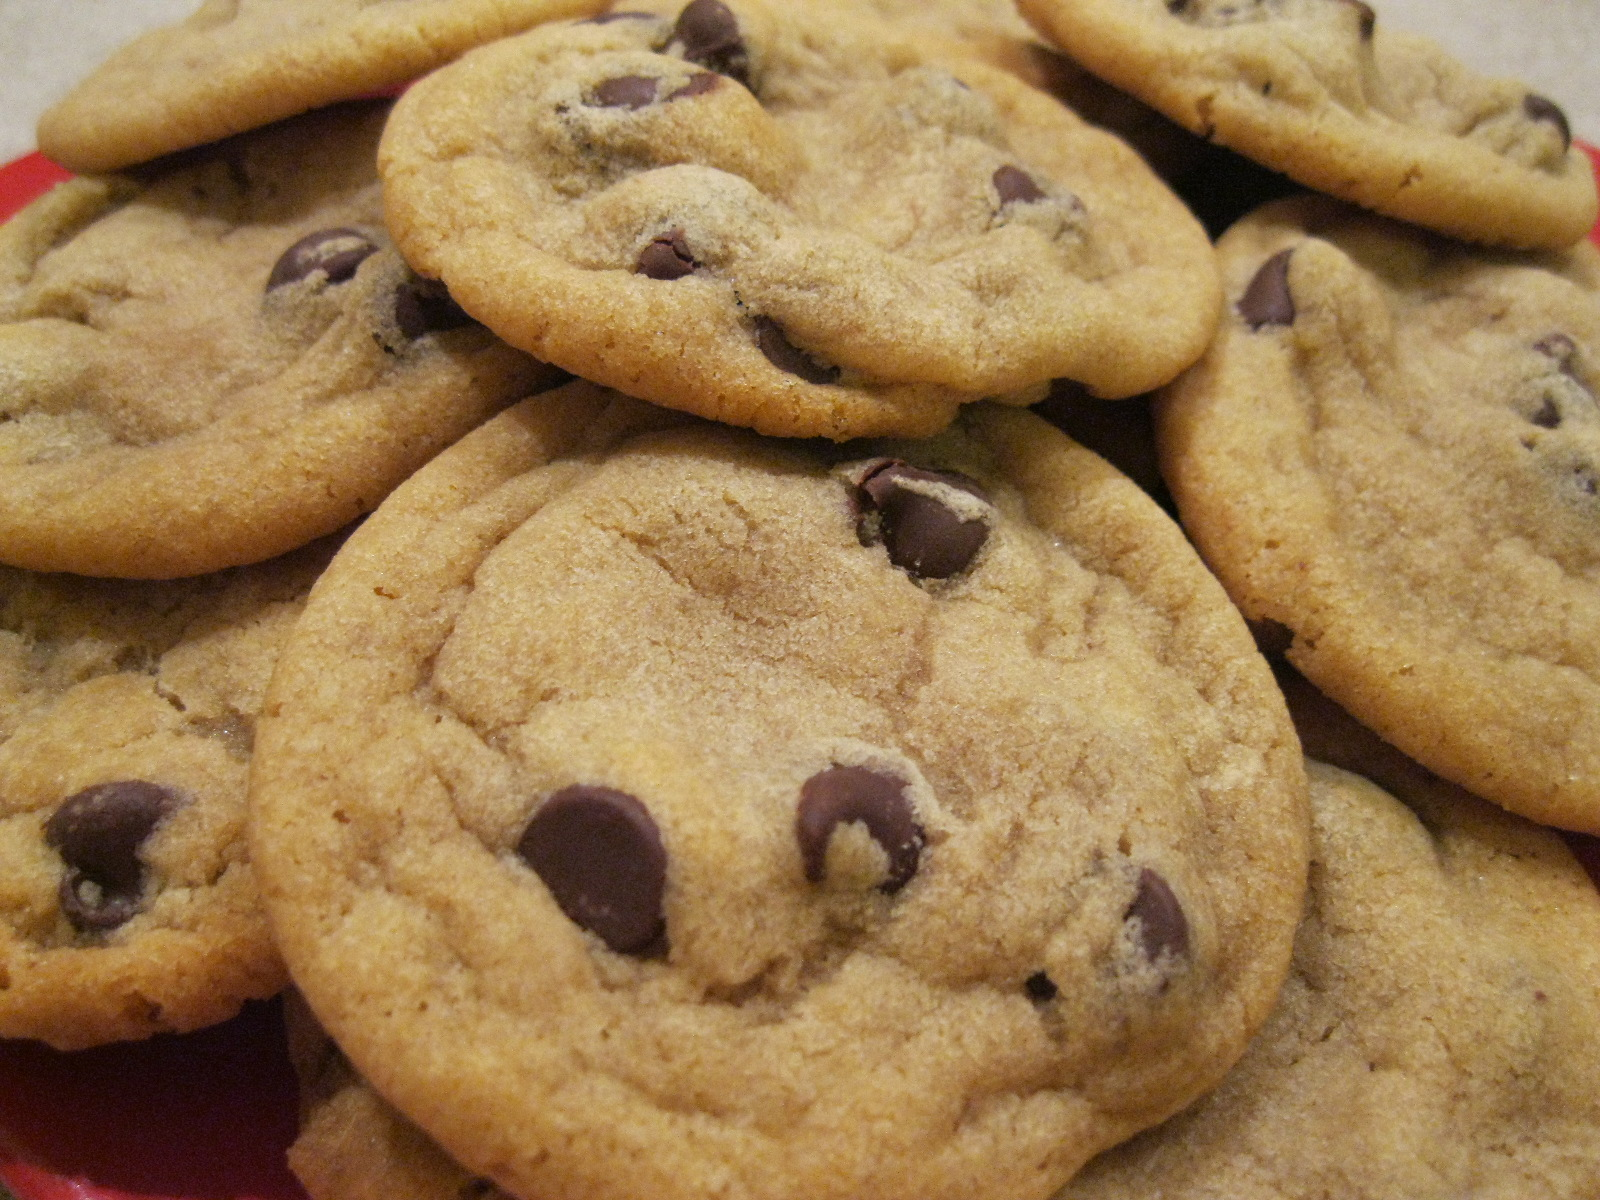 ... Recipe: Chewy Chocolate Chip Cookies – Take 1) | Oven Lovin' Runnin